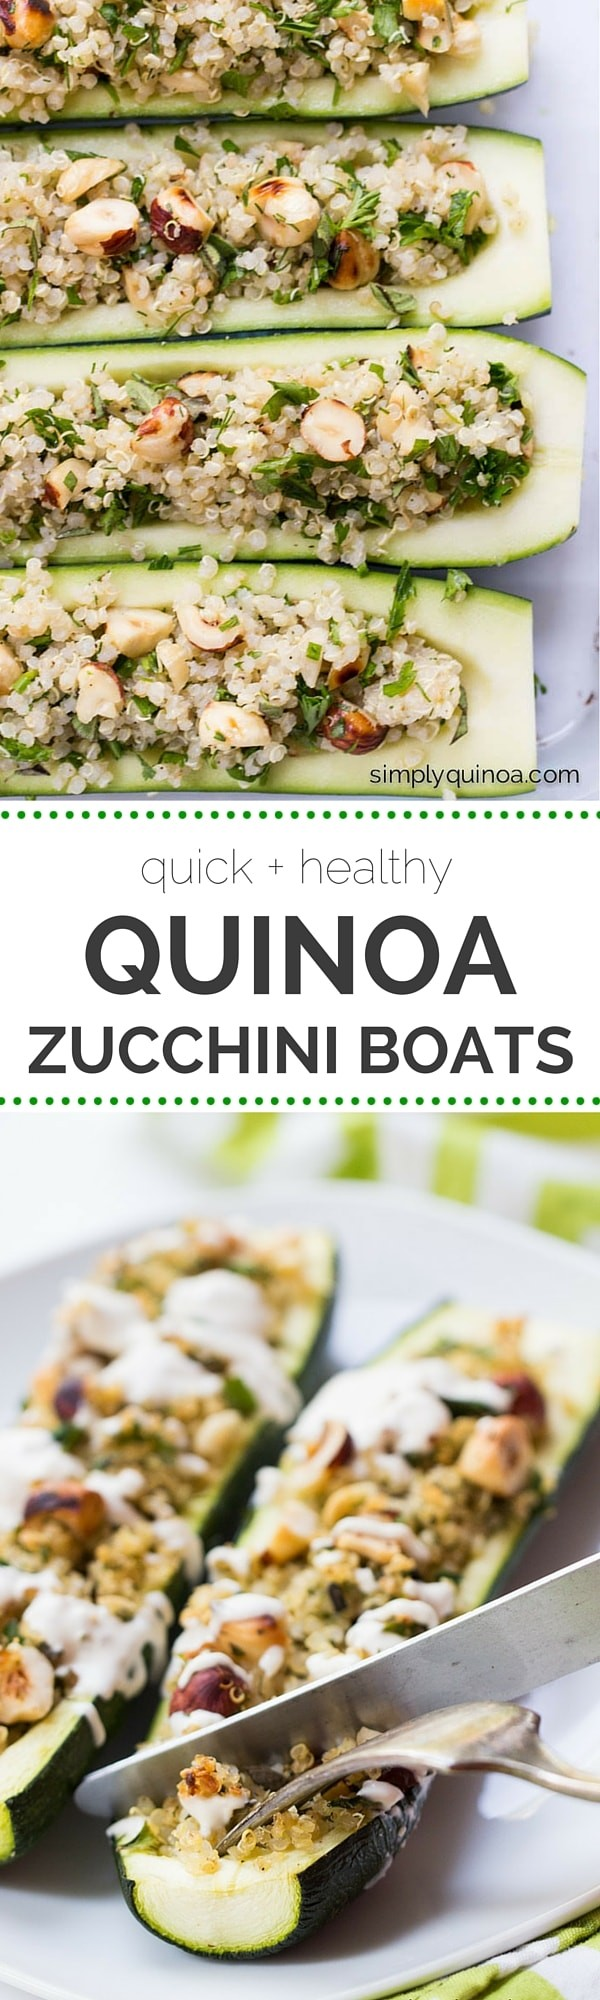 These super quick Quinoa Zucchini Boats make for a healthy + delicious weeknight meal | recipe on simplyquinoa.com